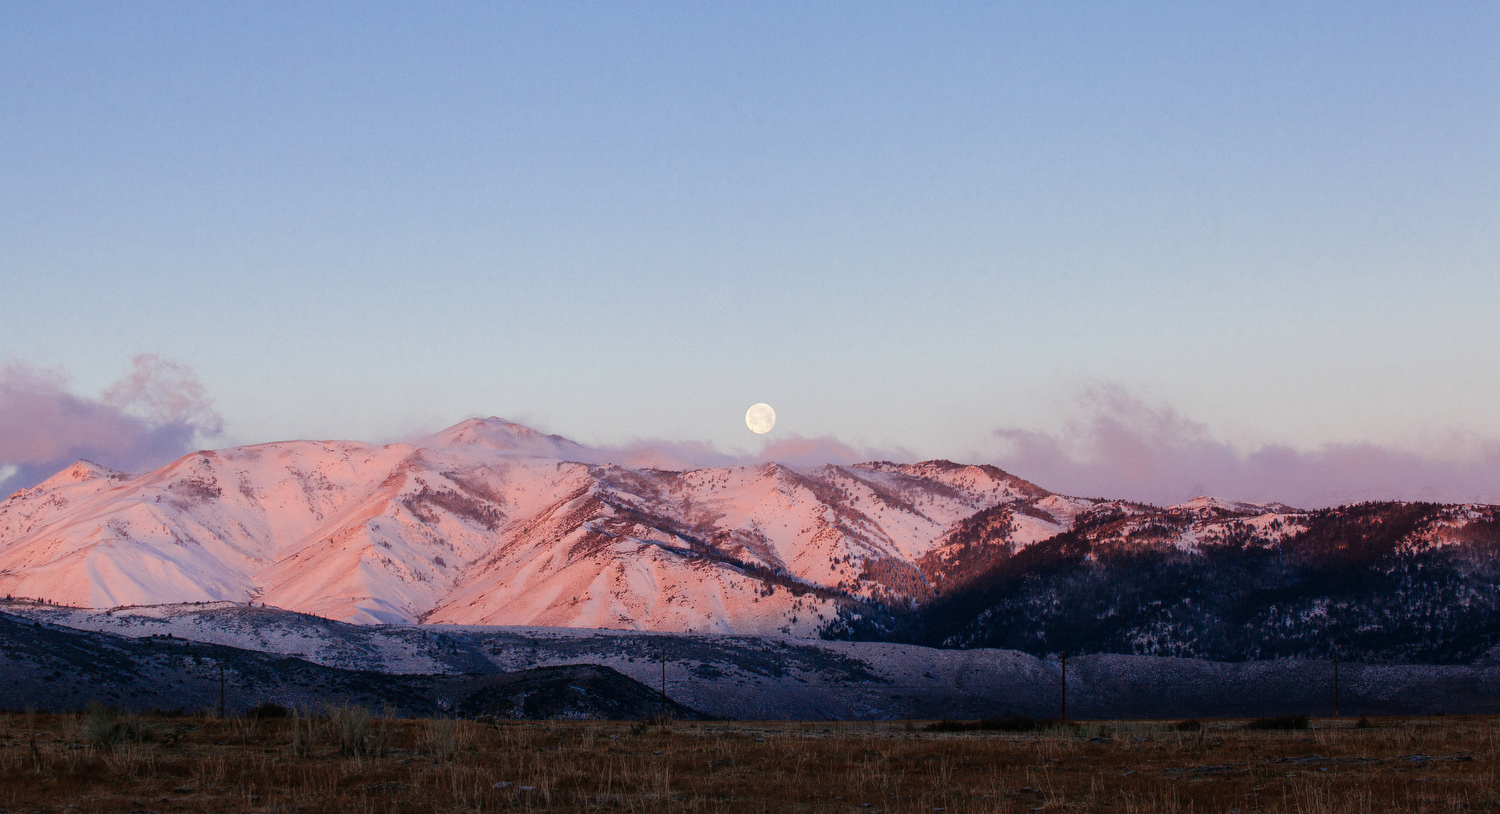 Moonset and sunrise on the Eastern Sierras near Bridgeport, Calif. off of Highway 395.